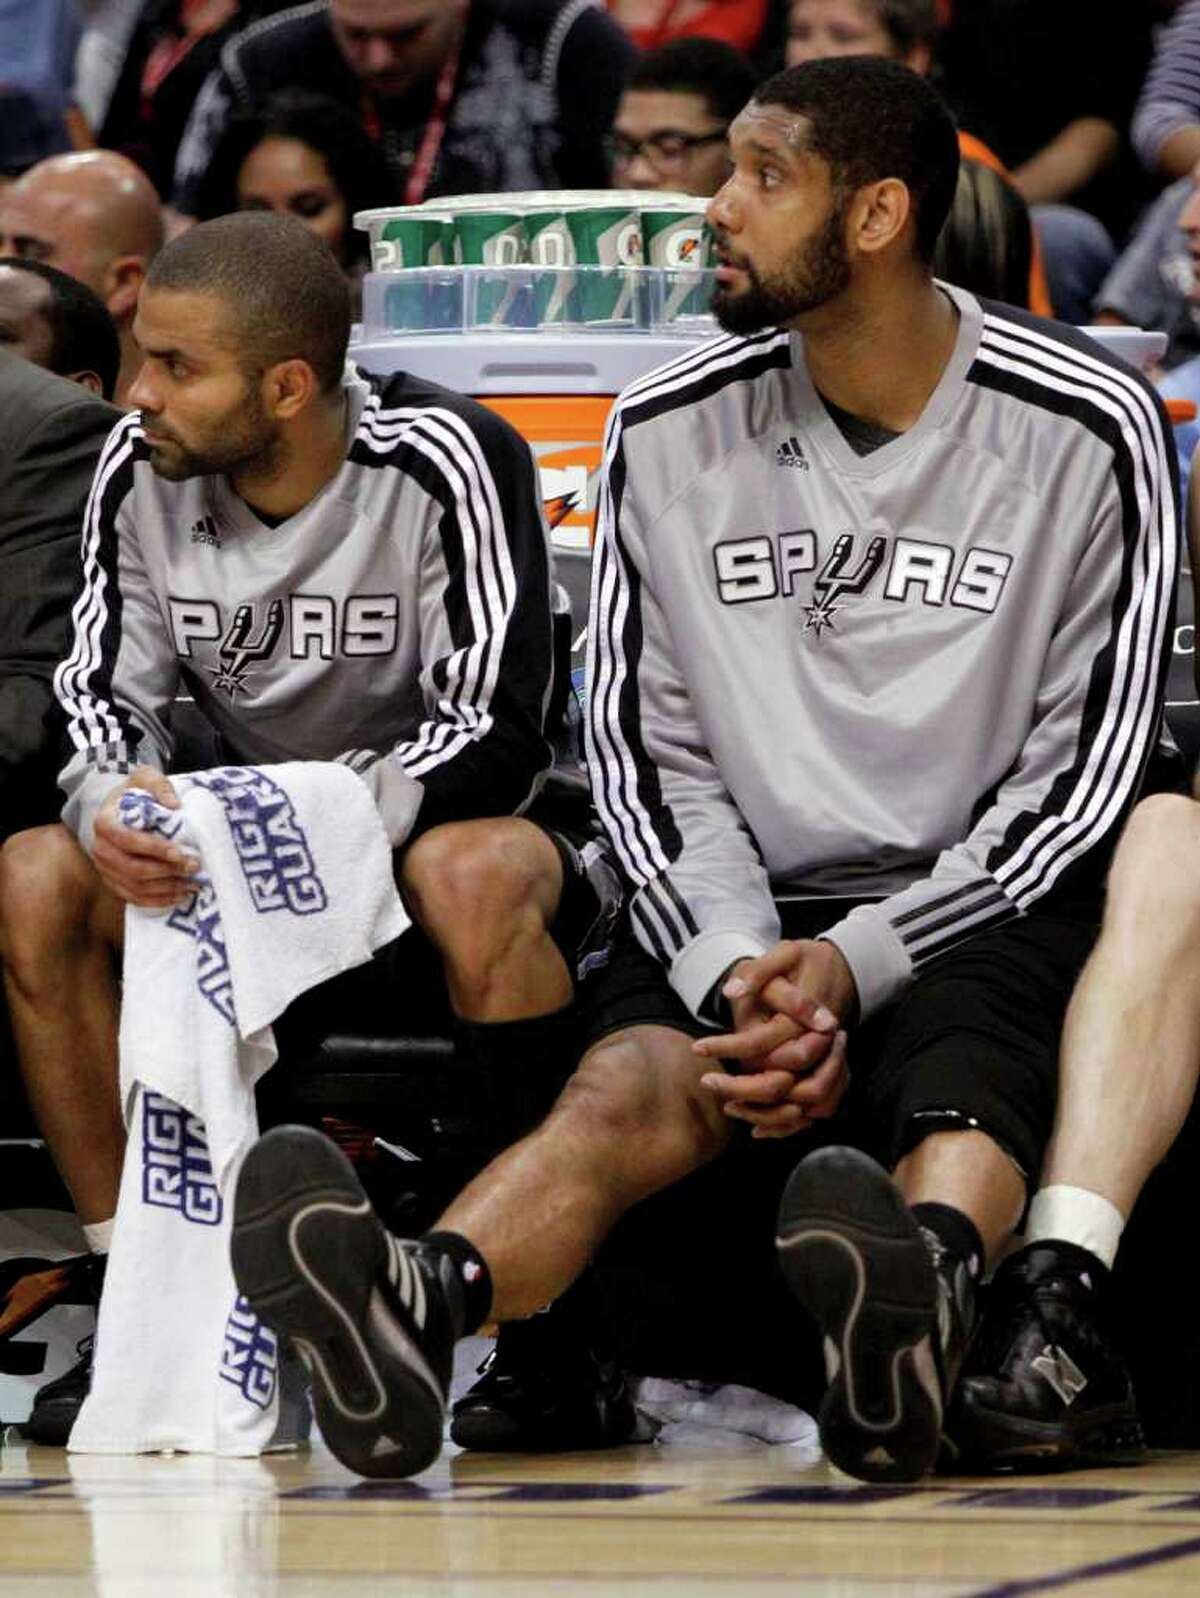 San Antonio Spurs' Tim Duncan, right, and Tony Parker, of France, watch from the bench against the Phoenix Suns' during the fourth quarter of an NBA basketball game Wednesday, April 13, 2011, in Phoenix.